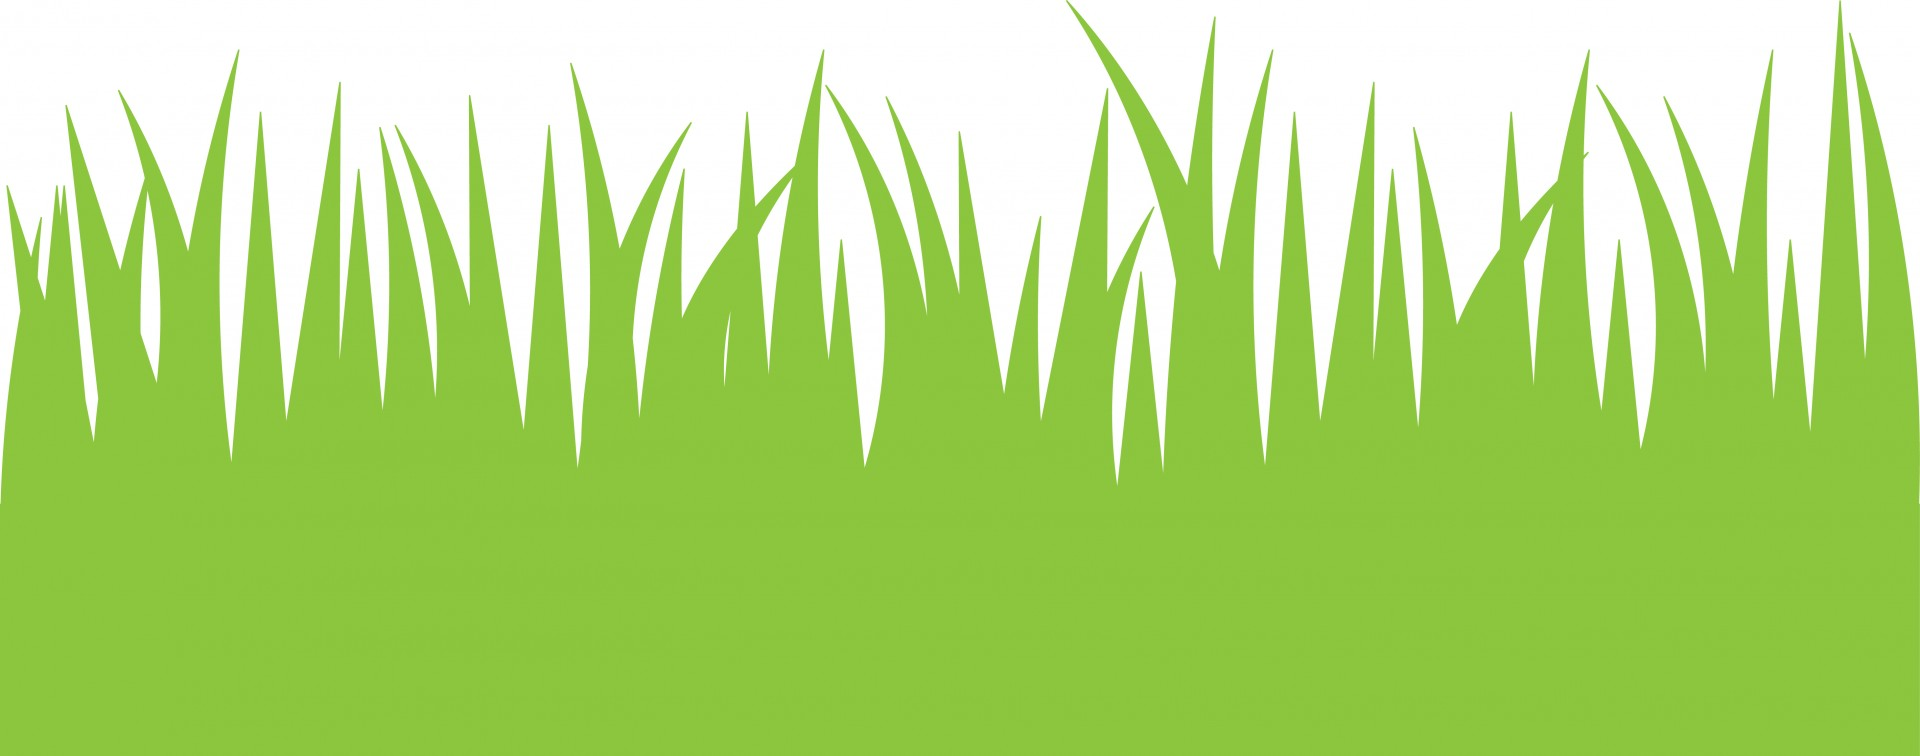 1920x756 15 Lawn Care Clipart Grass Pattern For Free Download On Mbtskoudsalg